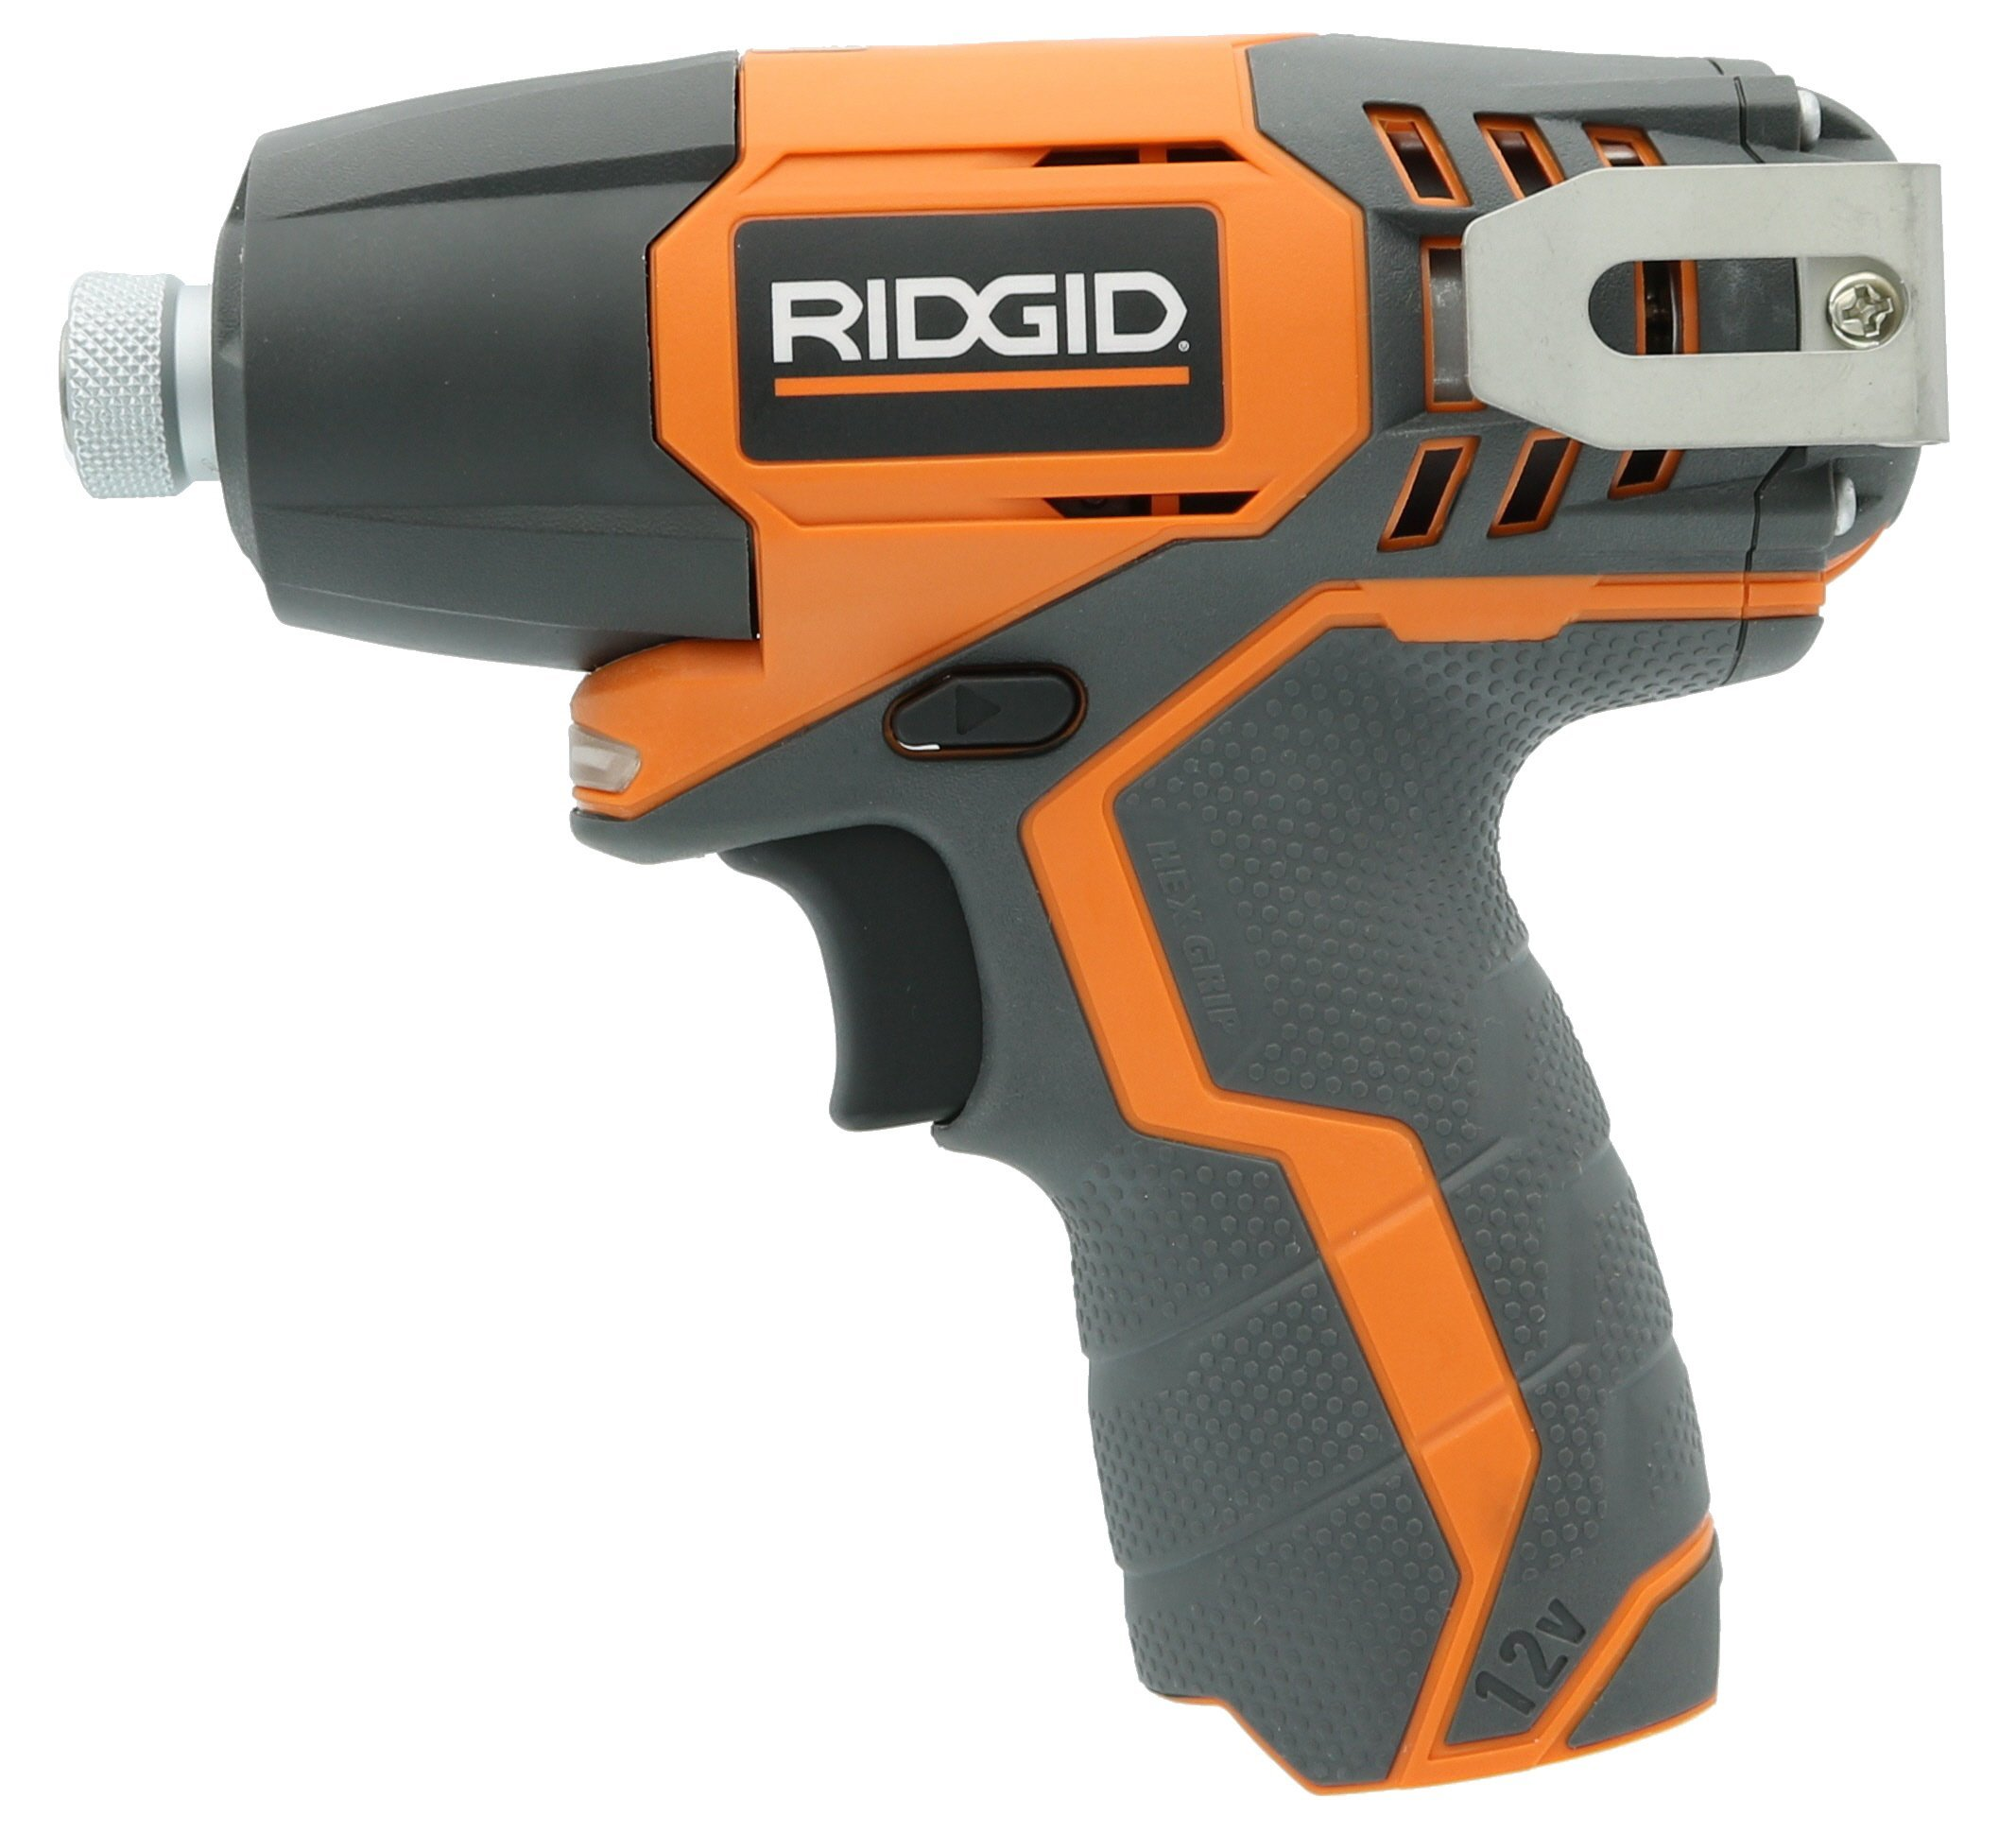 Ridgid R82230N 1/4 Inch 12 Volt Lithium Ion 1,100 In. Lbs. Impact Driver (Battery Not Included, Power Tool Only) (Certified Refurbished) by Ridgid (Image #2)